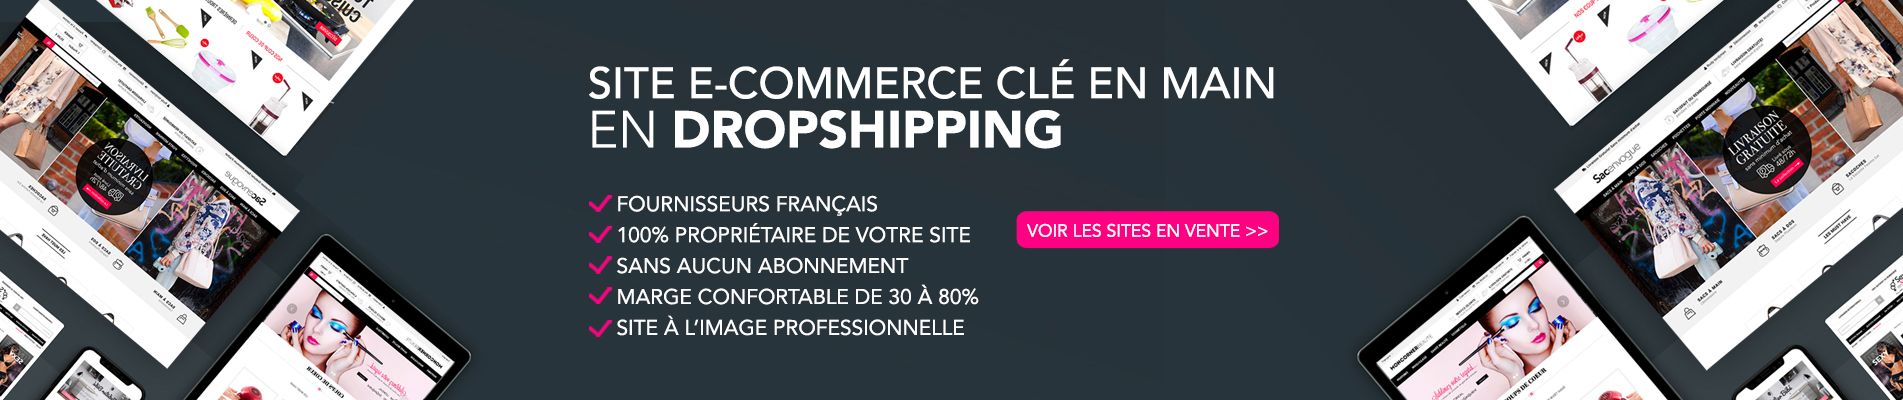 vente site e commerce dropshipping cl en main fournisseur en france. Black Bedroom Furniture Sets. Home Design Ideas